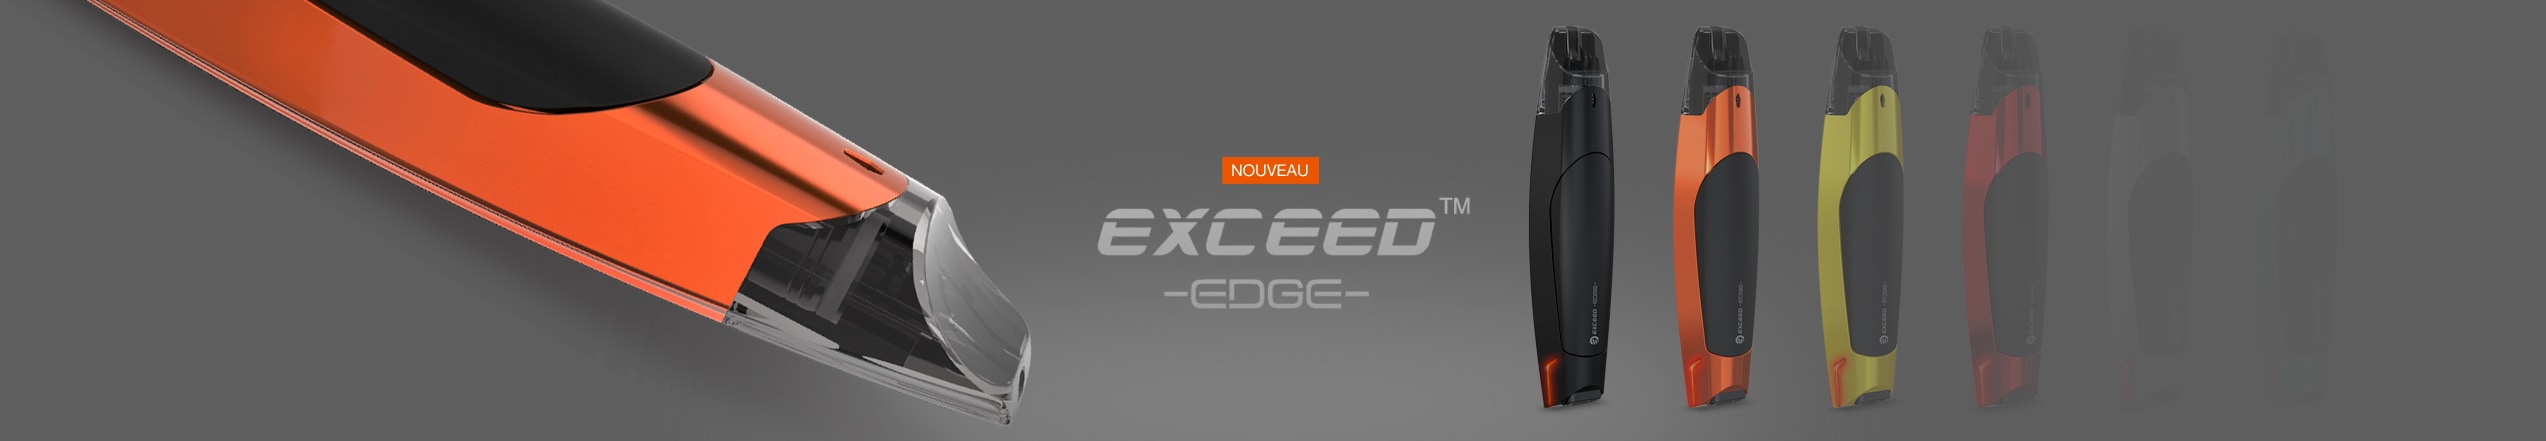 slider-exceed-edge-6